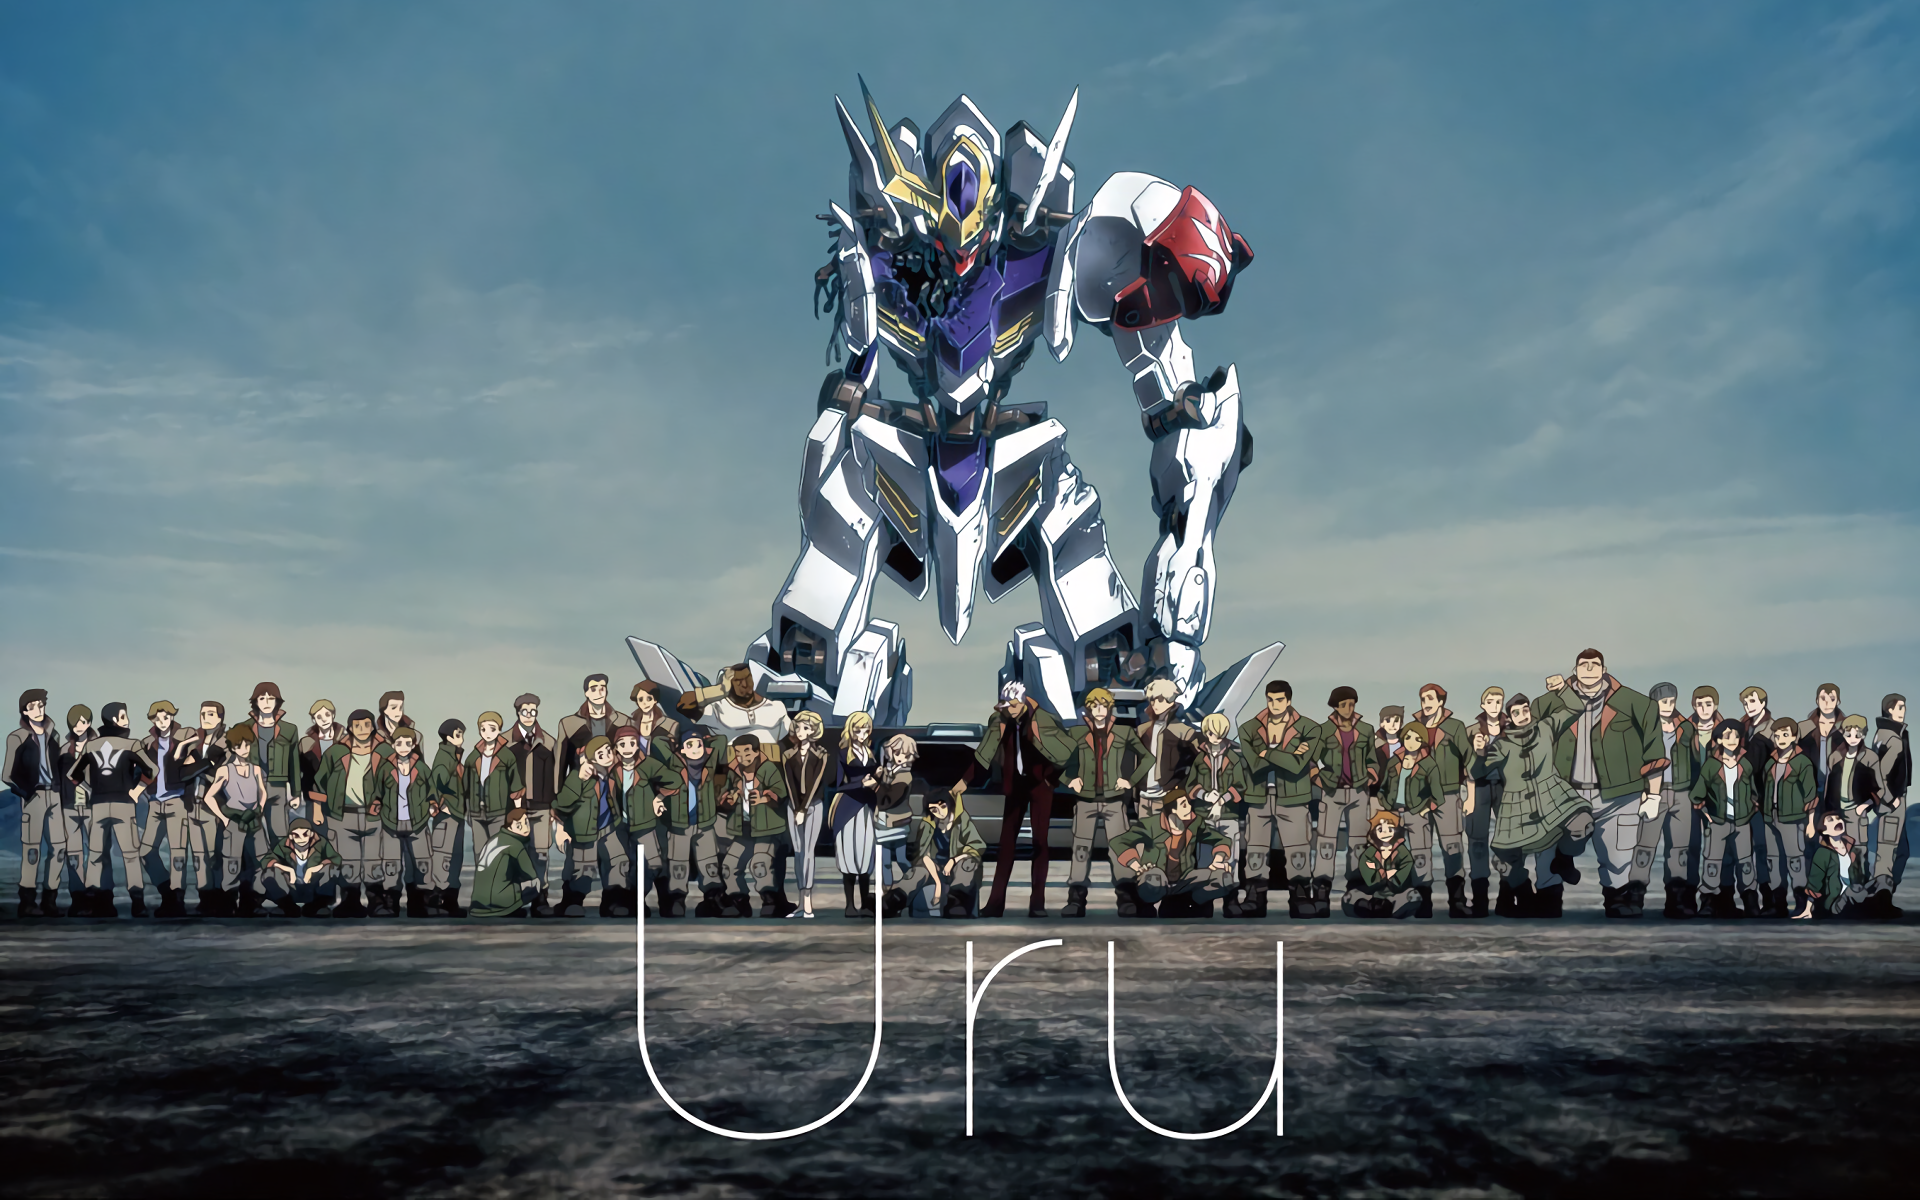 24 Mobile Suit Gundam Iron Blooded Orphans Hd Wallpapers